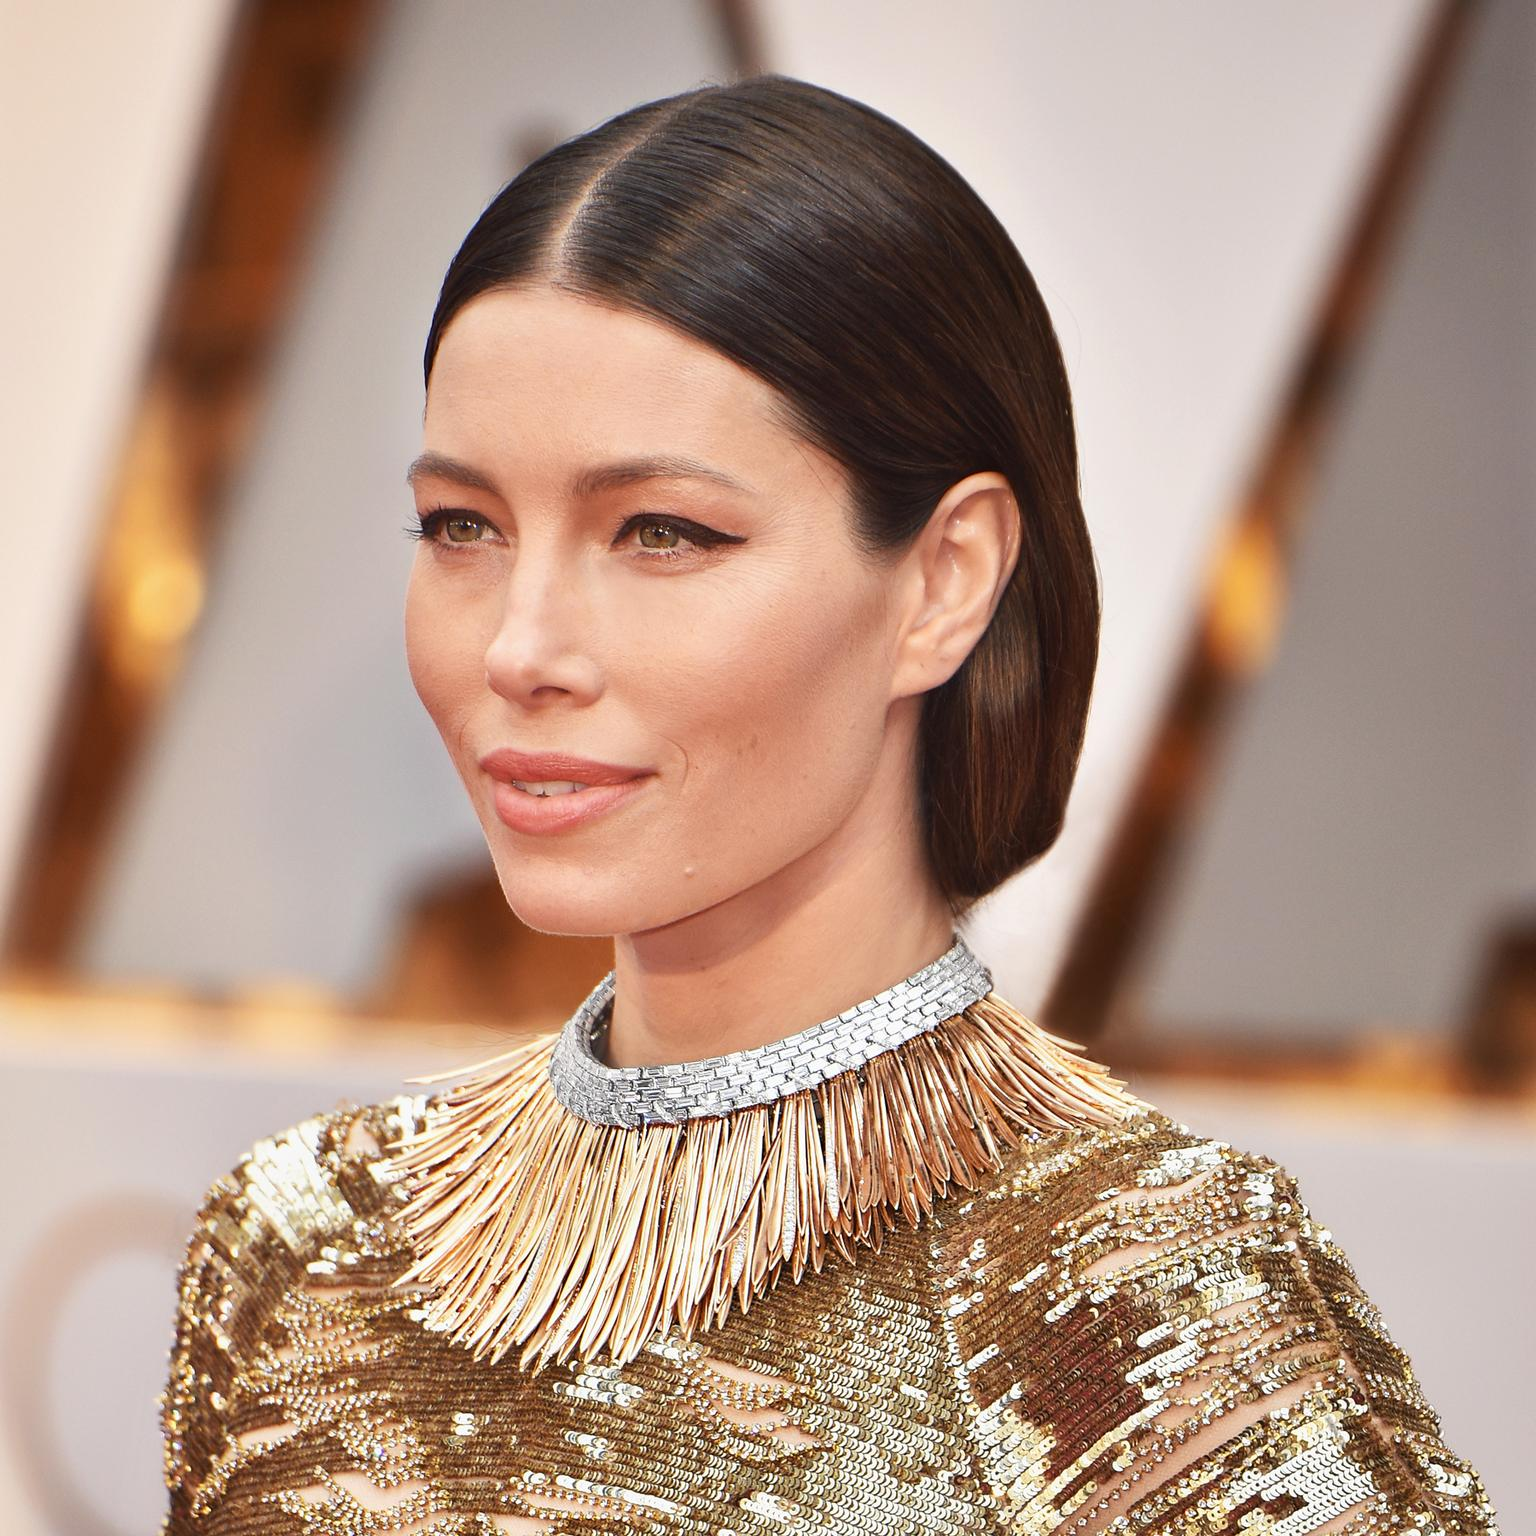 Jessica Biel at the Oscars 2017 wearing a sensational Tiffany Blue Book 2017 necklace